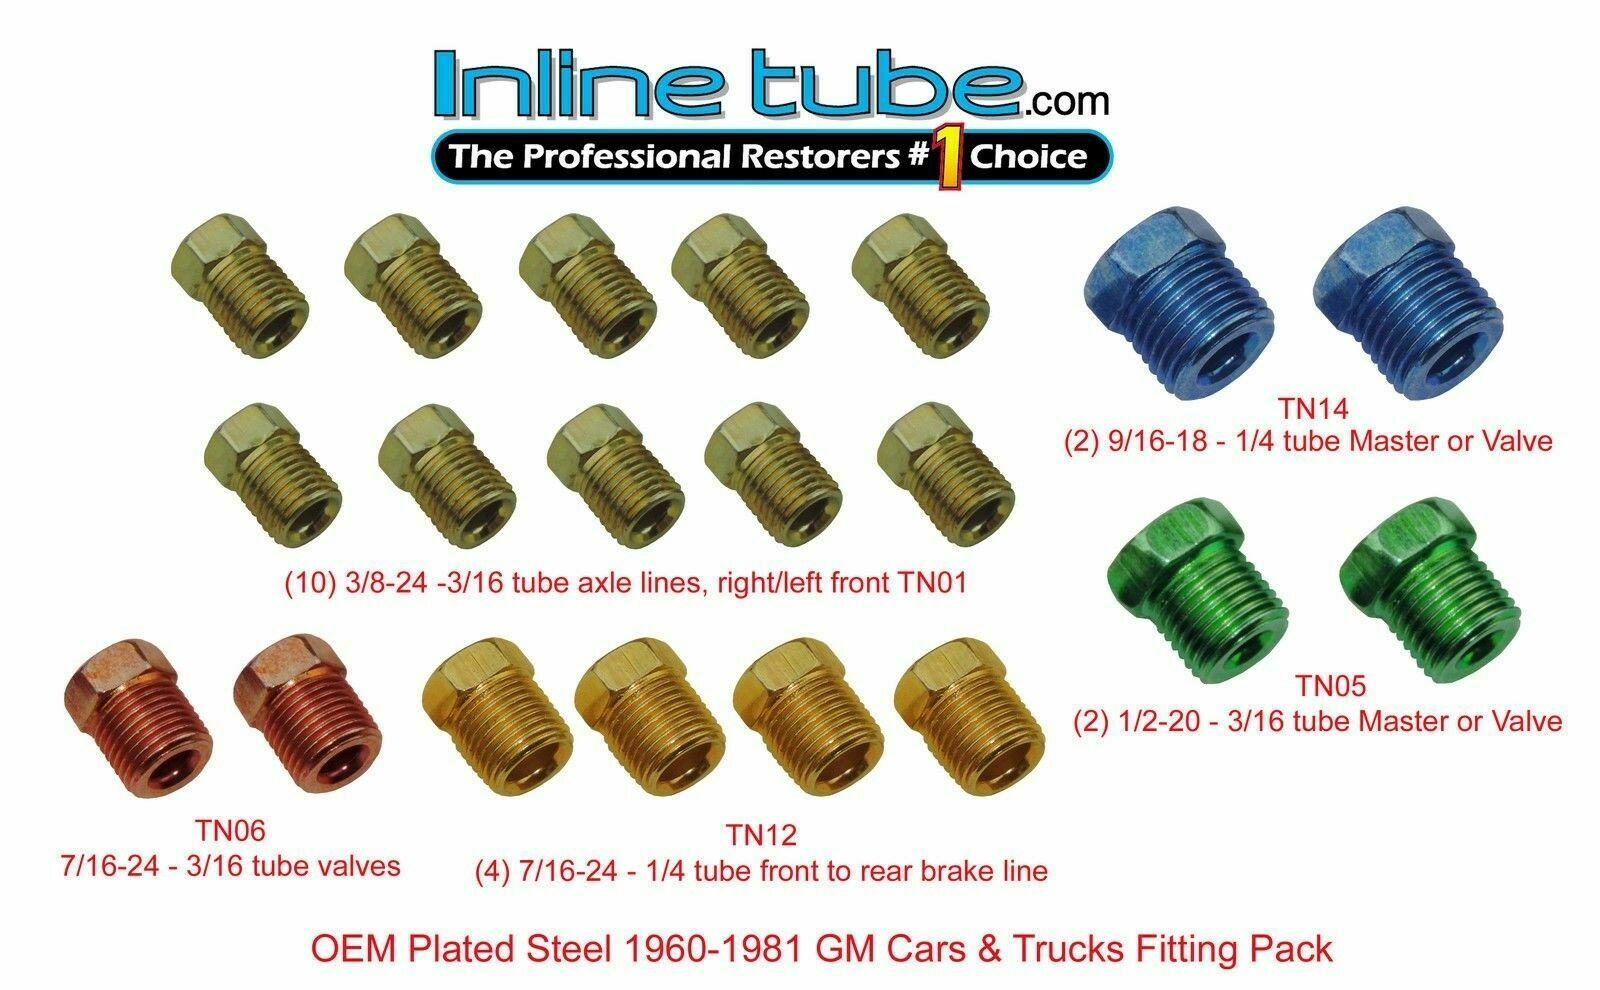 4 Unions 8 Nuts 5//8-18 Inverted Threads Minimprover 12 PCS Brass Inverted Flare Brake Line Assortment Automotive Brake Line Systems Fitting For 3//8 Tube